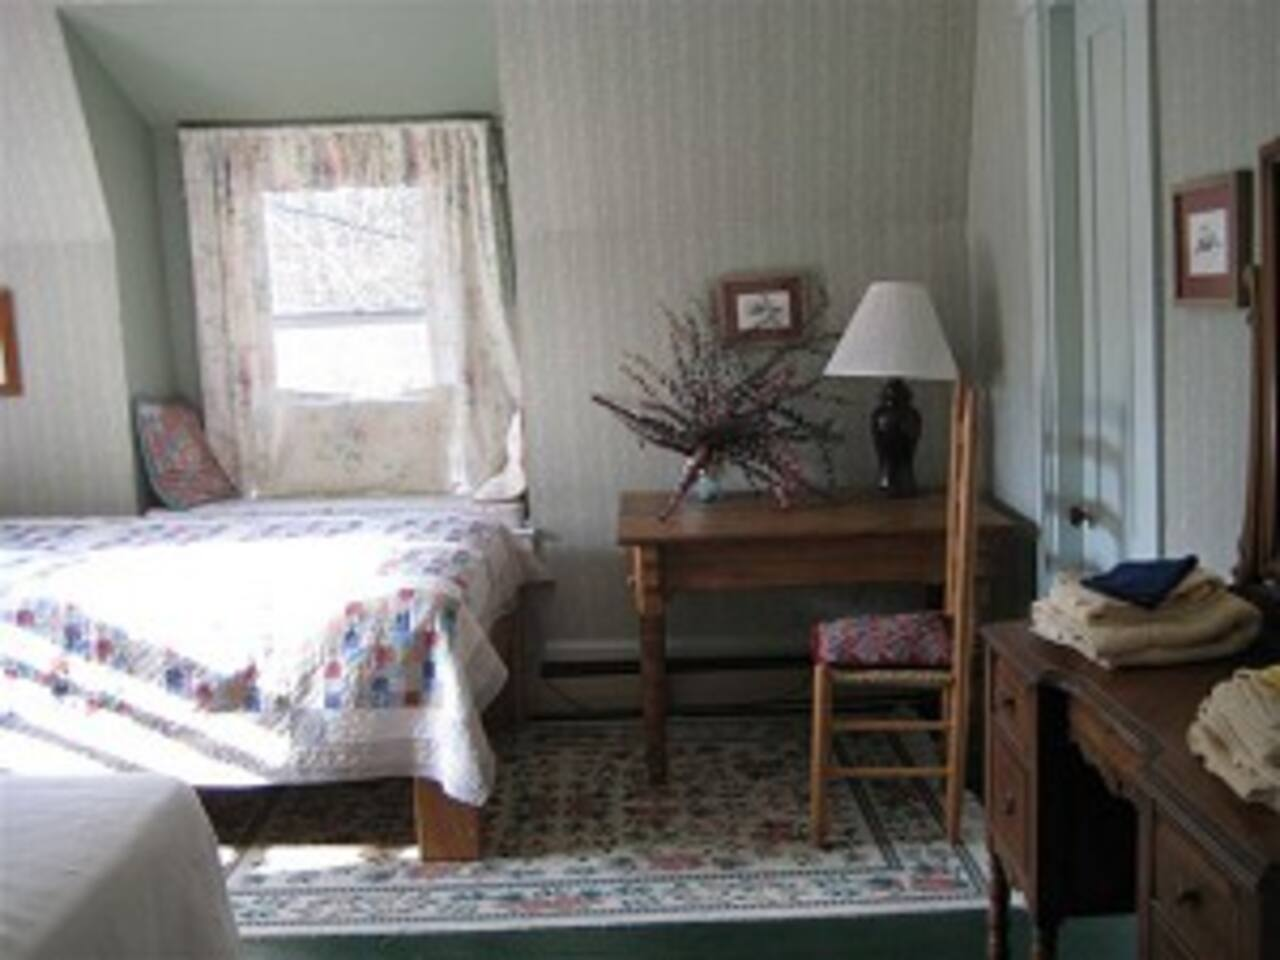 This room is on the second floor, and has one full bed and one twin bed.